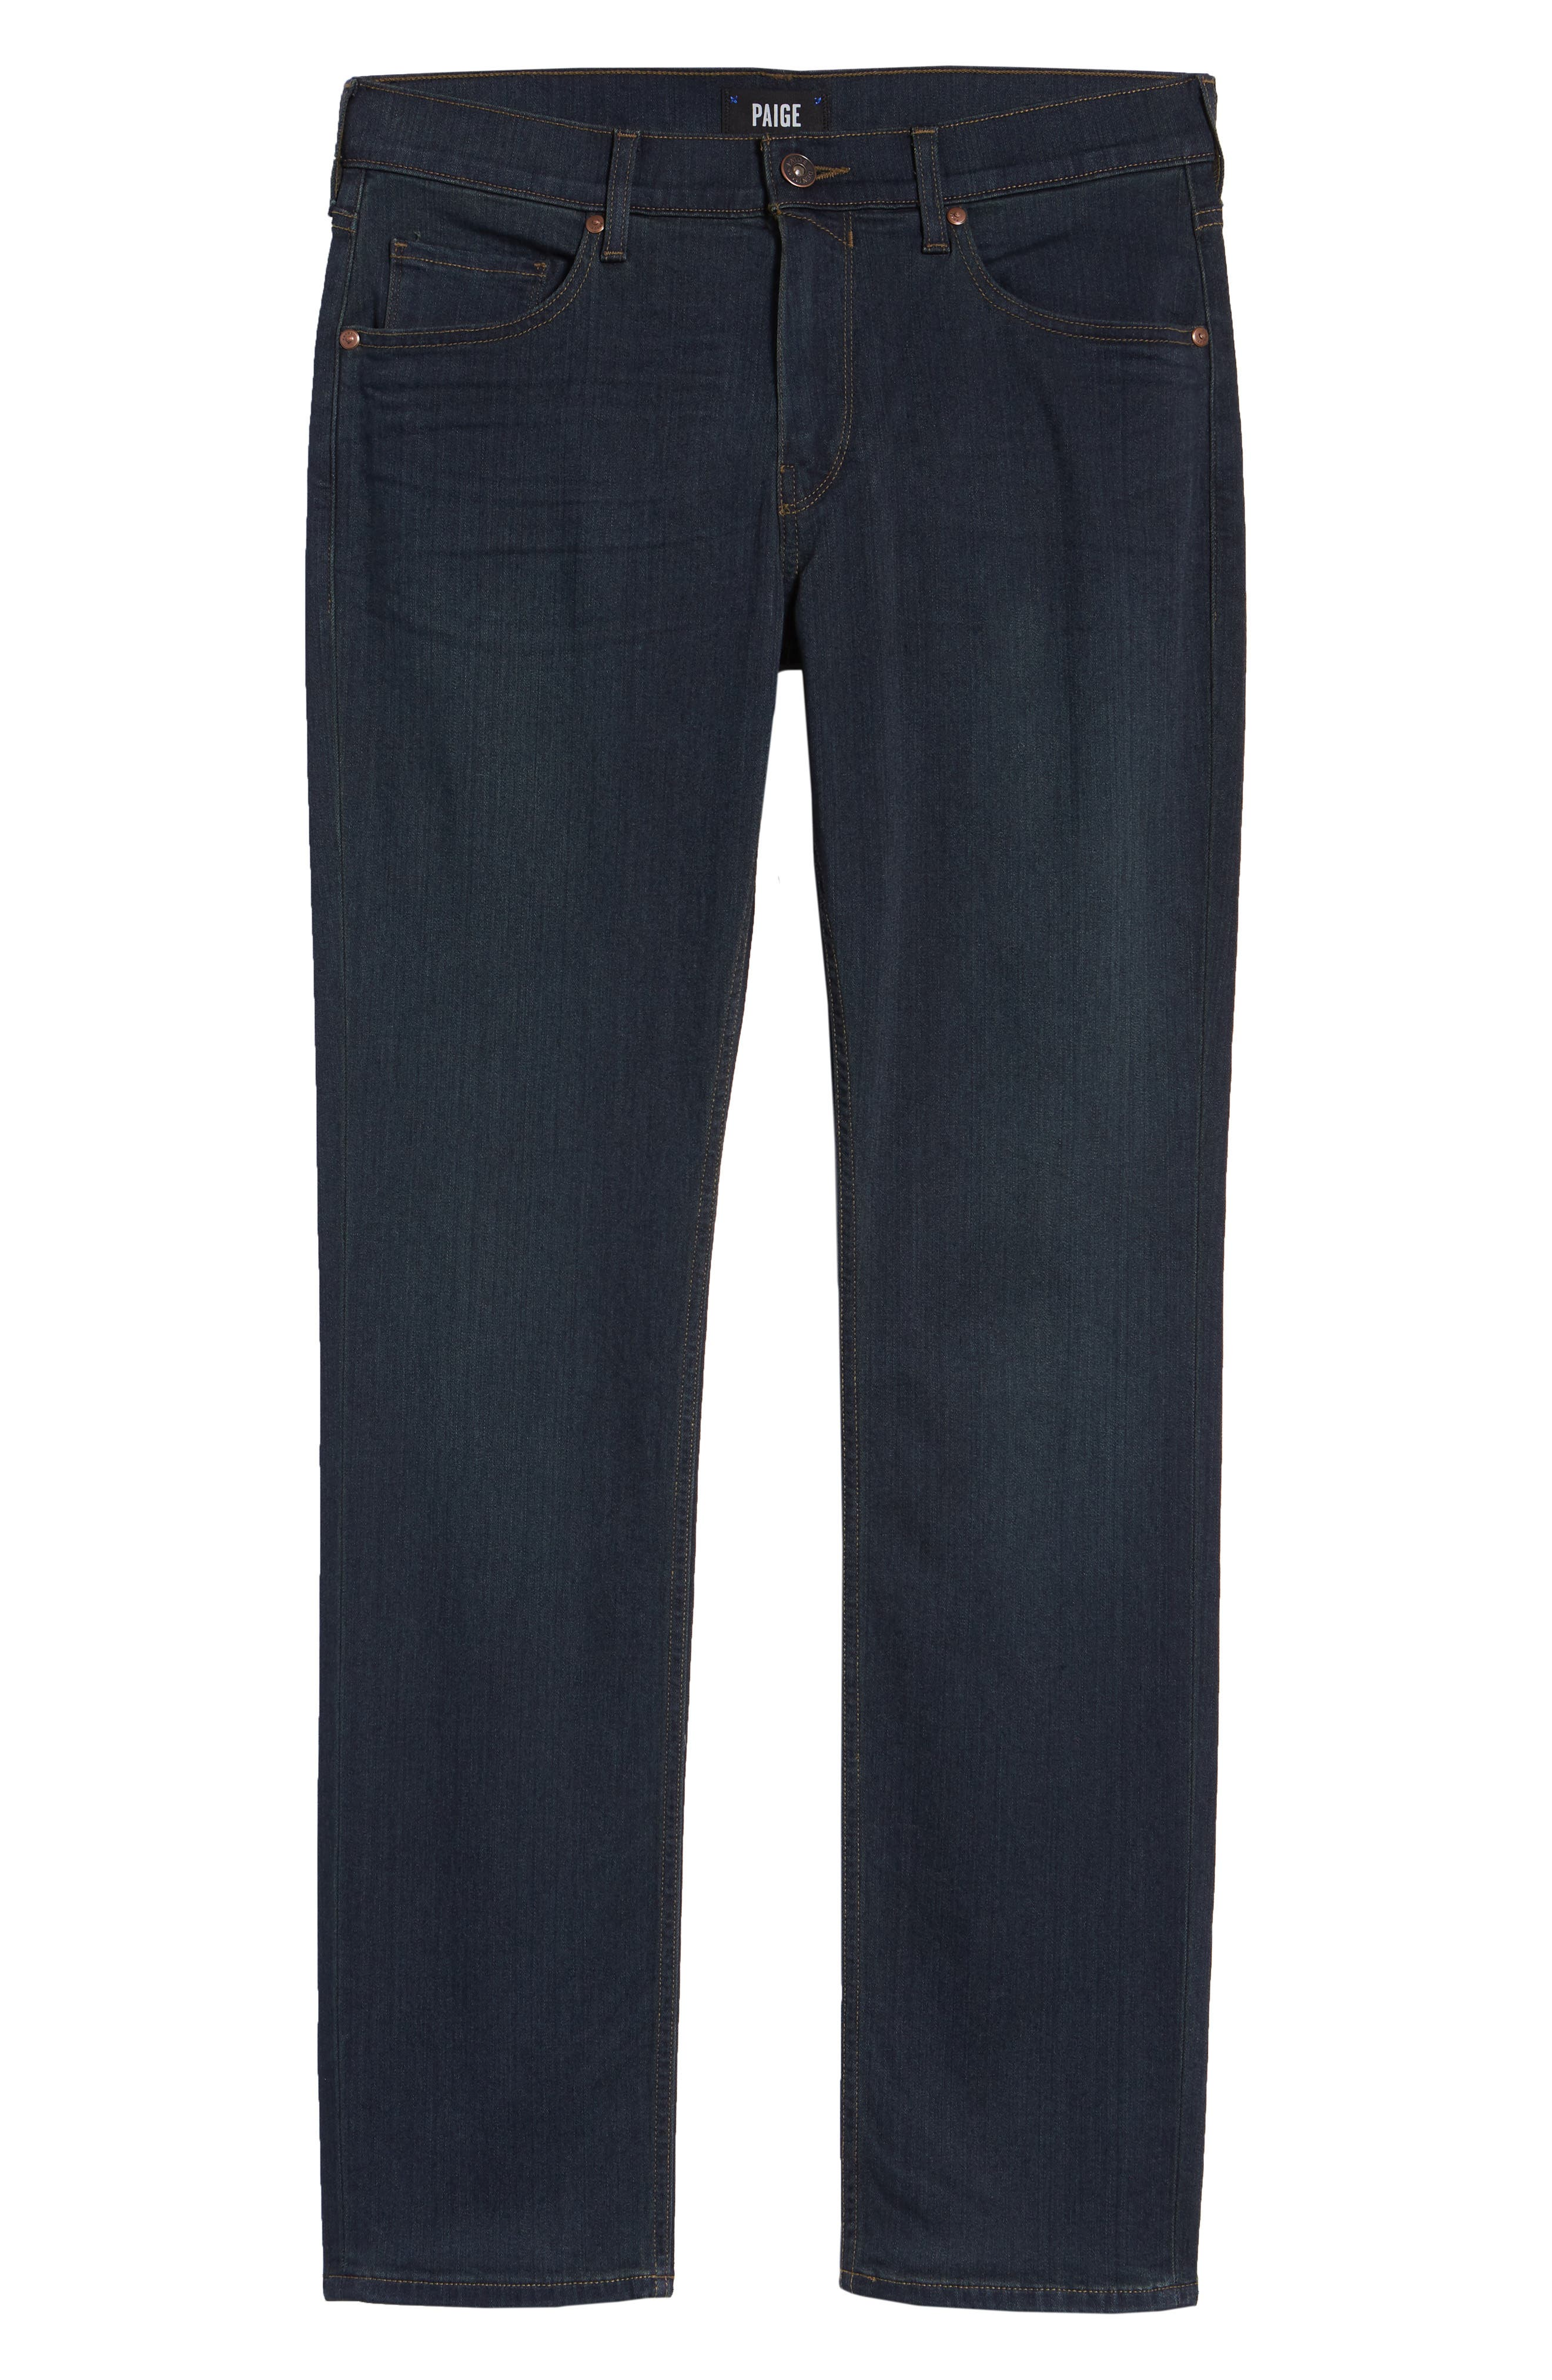 PAIGE,                             Transcend - Federal Slim Straight Leg Jeans,                             Alternate thumbnail 2, color,                             CELLAR